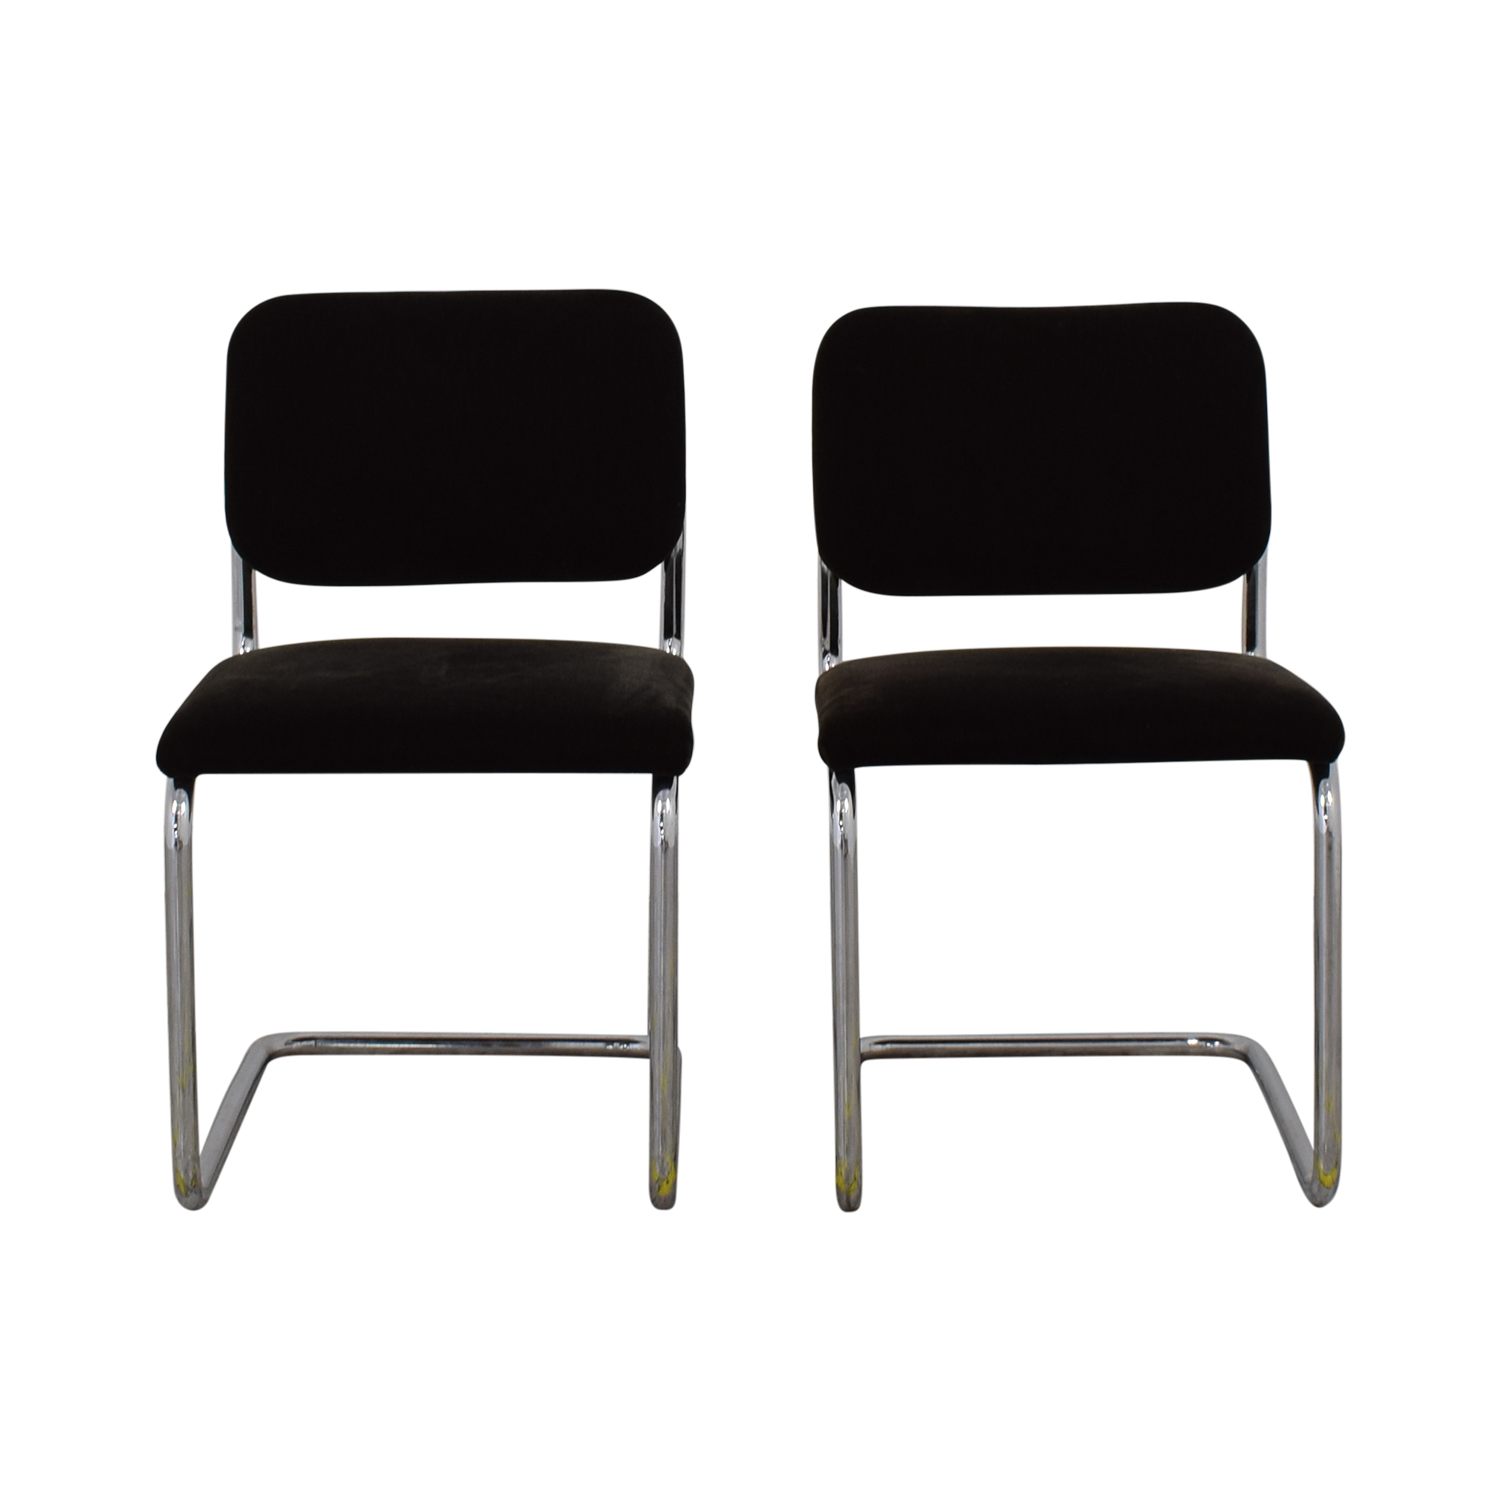 Pace Collection Knoll Marcel Breuer Cesca Chairs